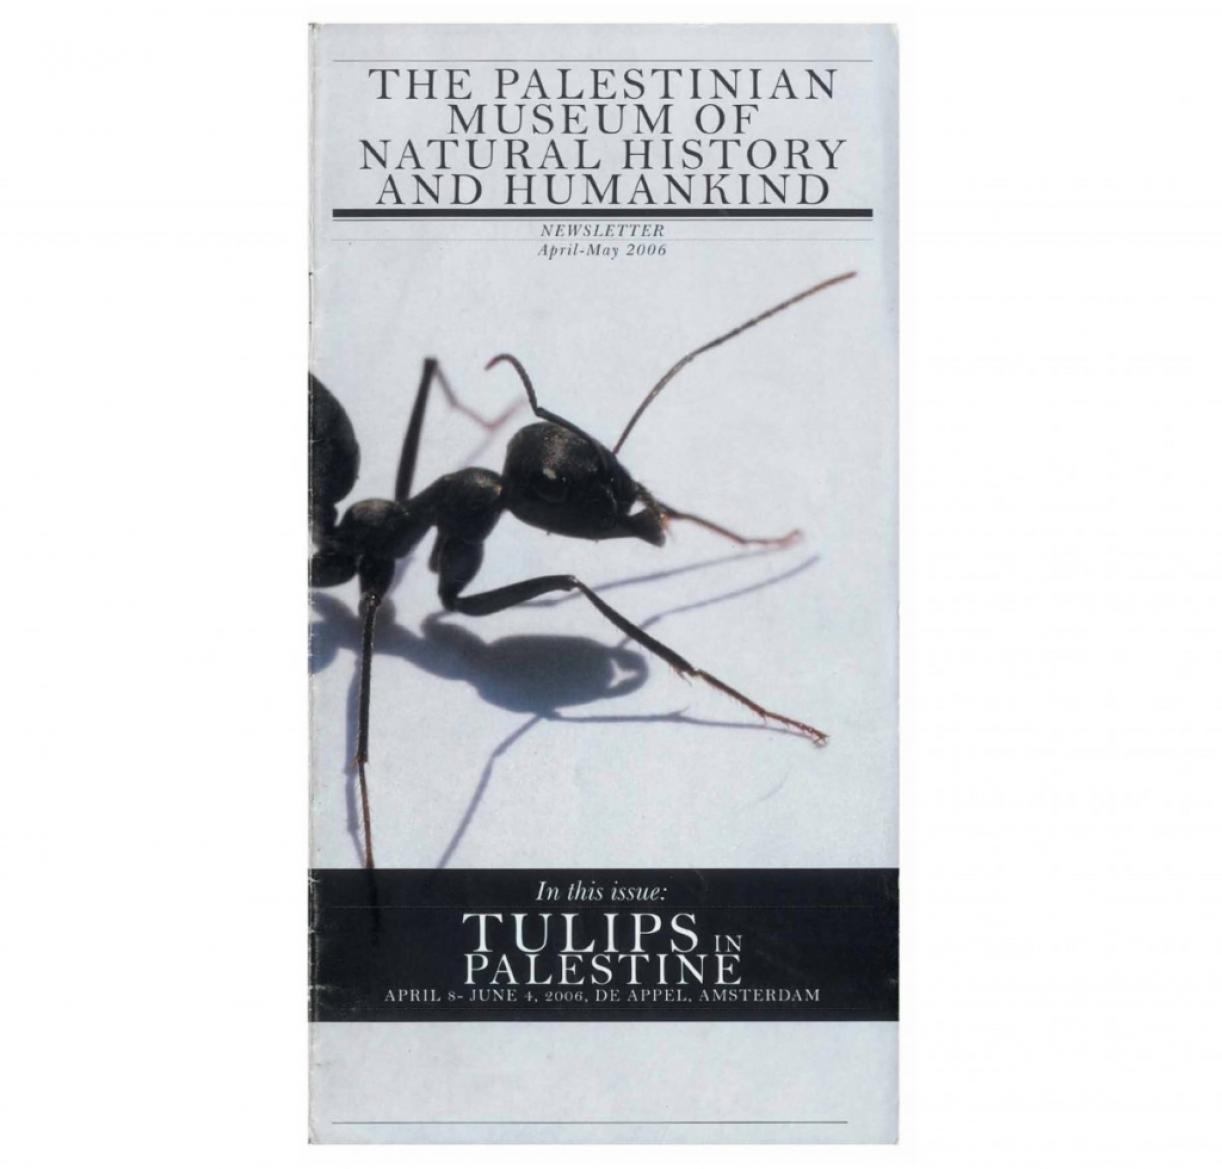 The Palestinian Museum of Natural History and Humankind, Newsletter, April - May 2006